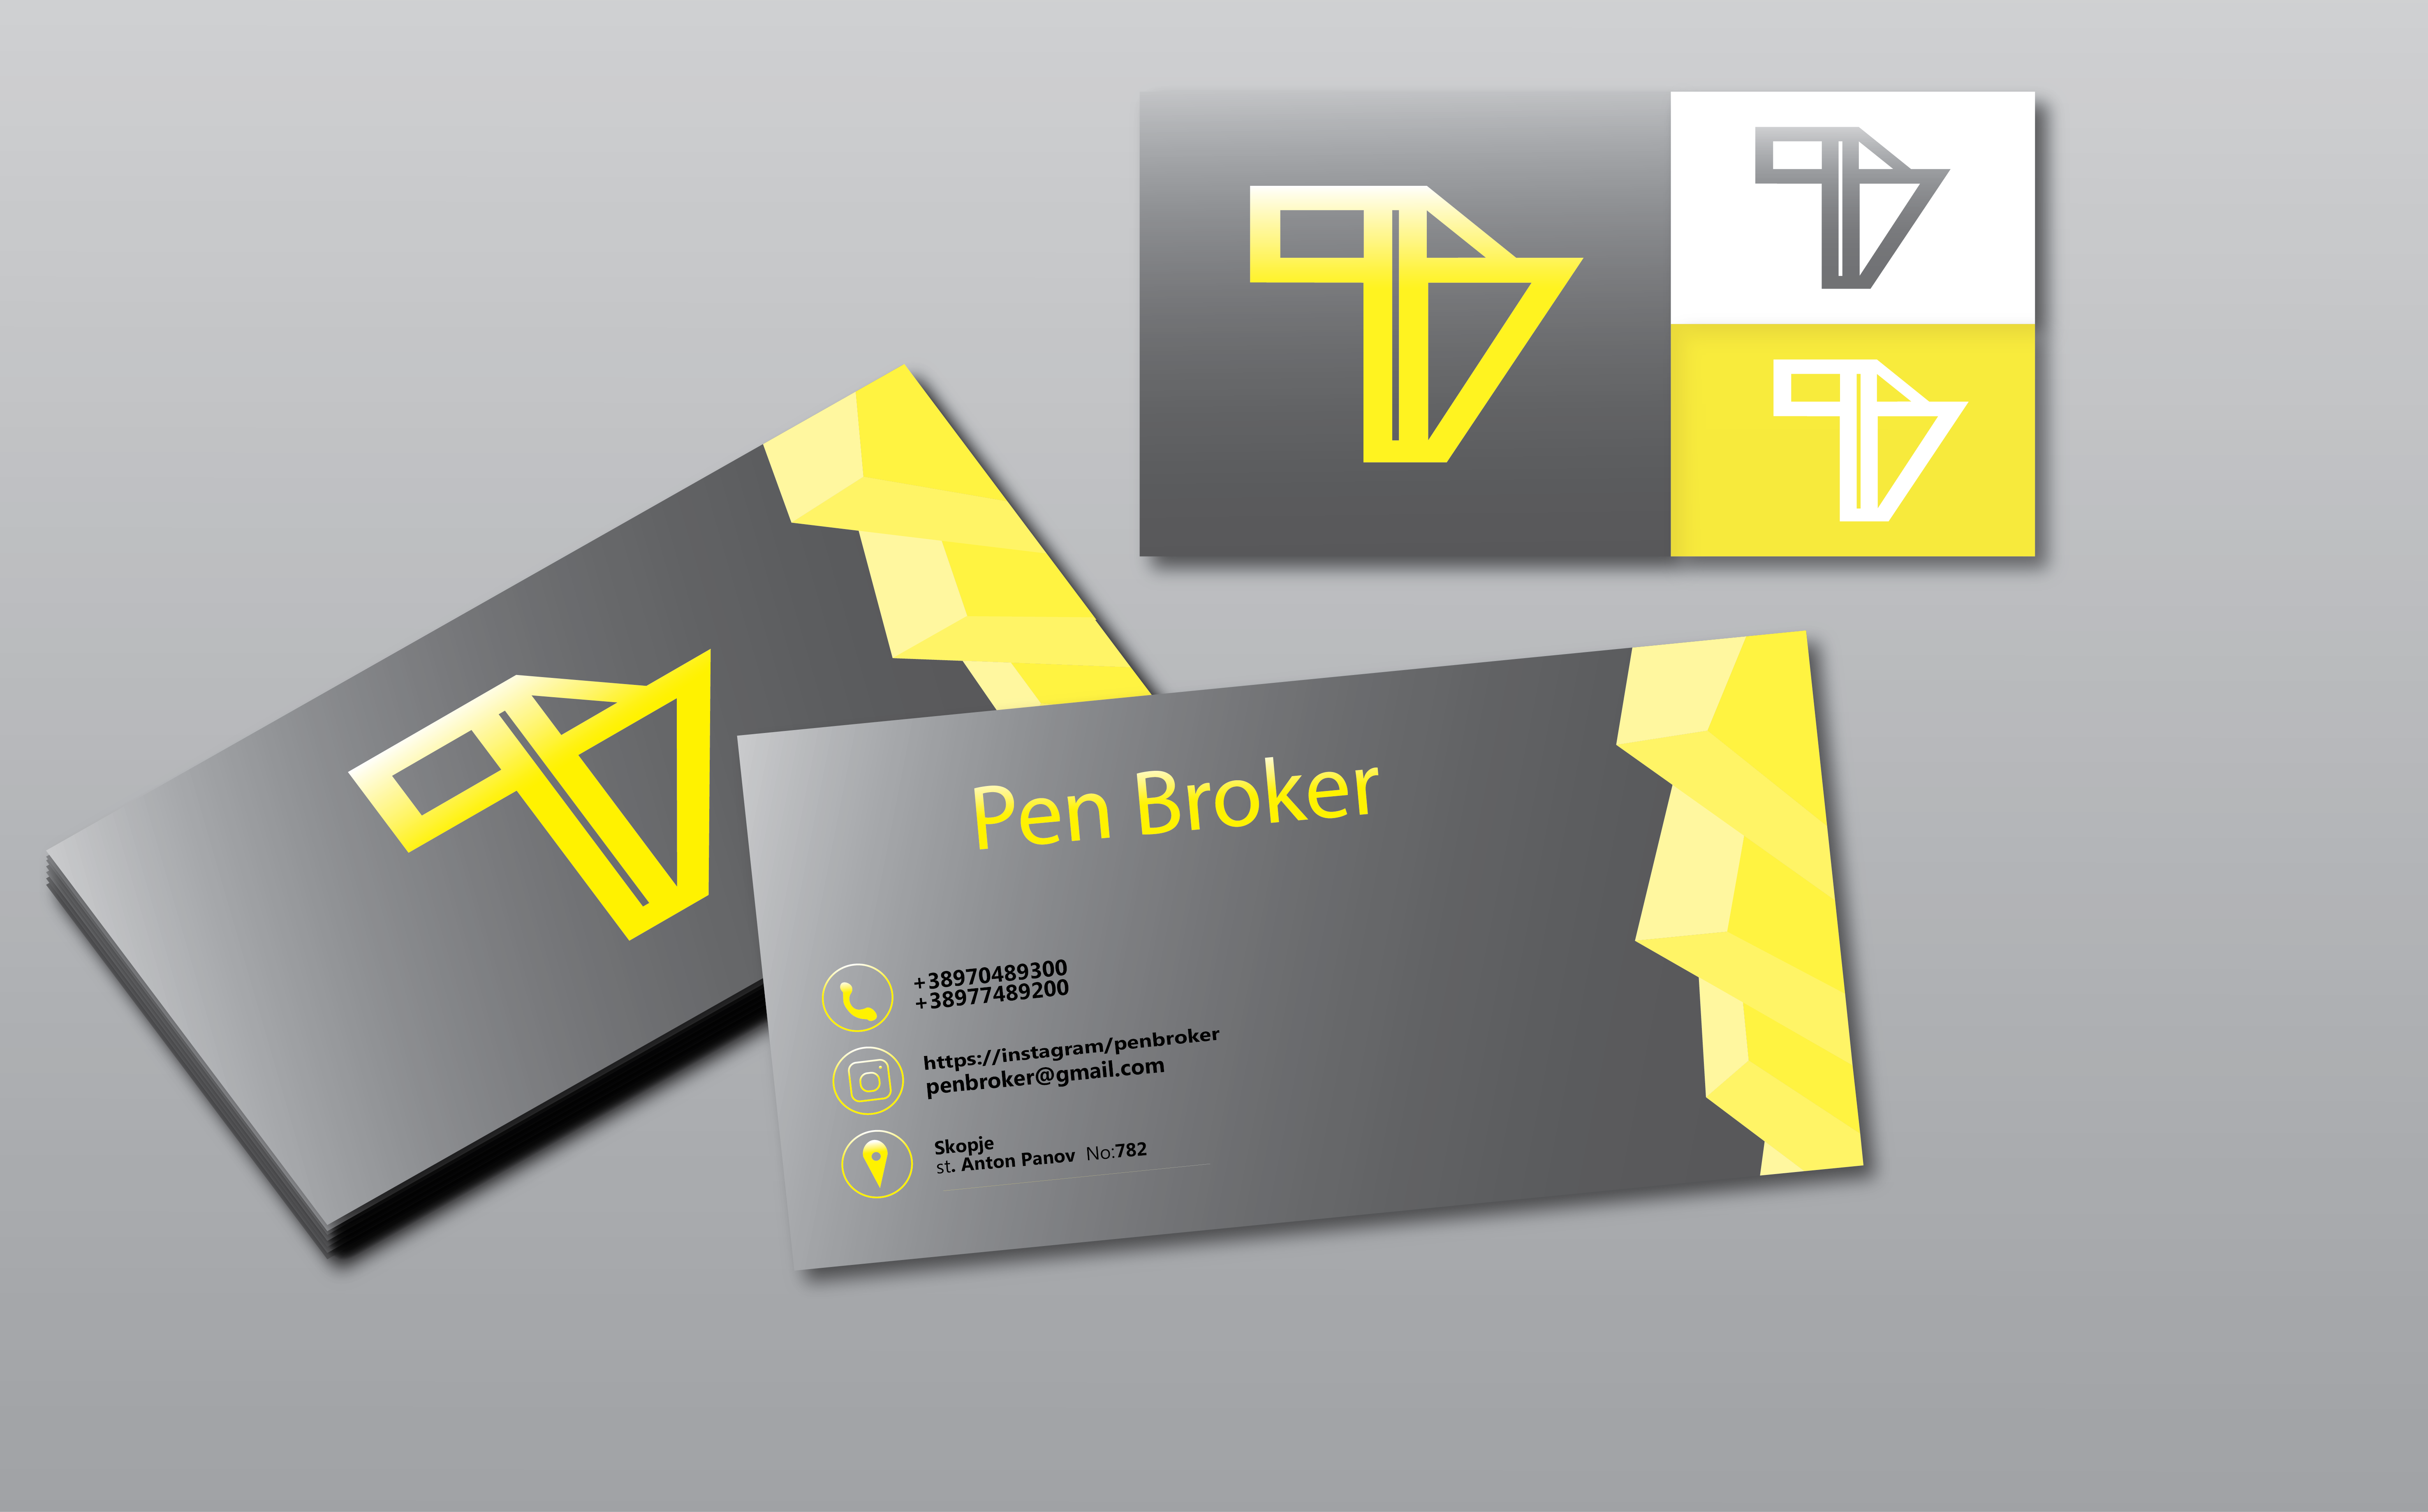 i will design professional logo + business card